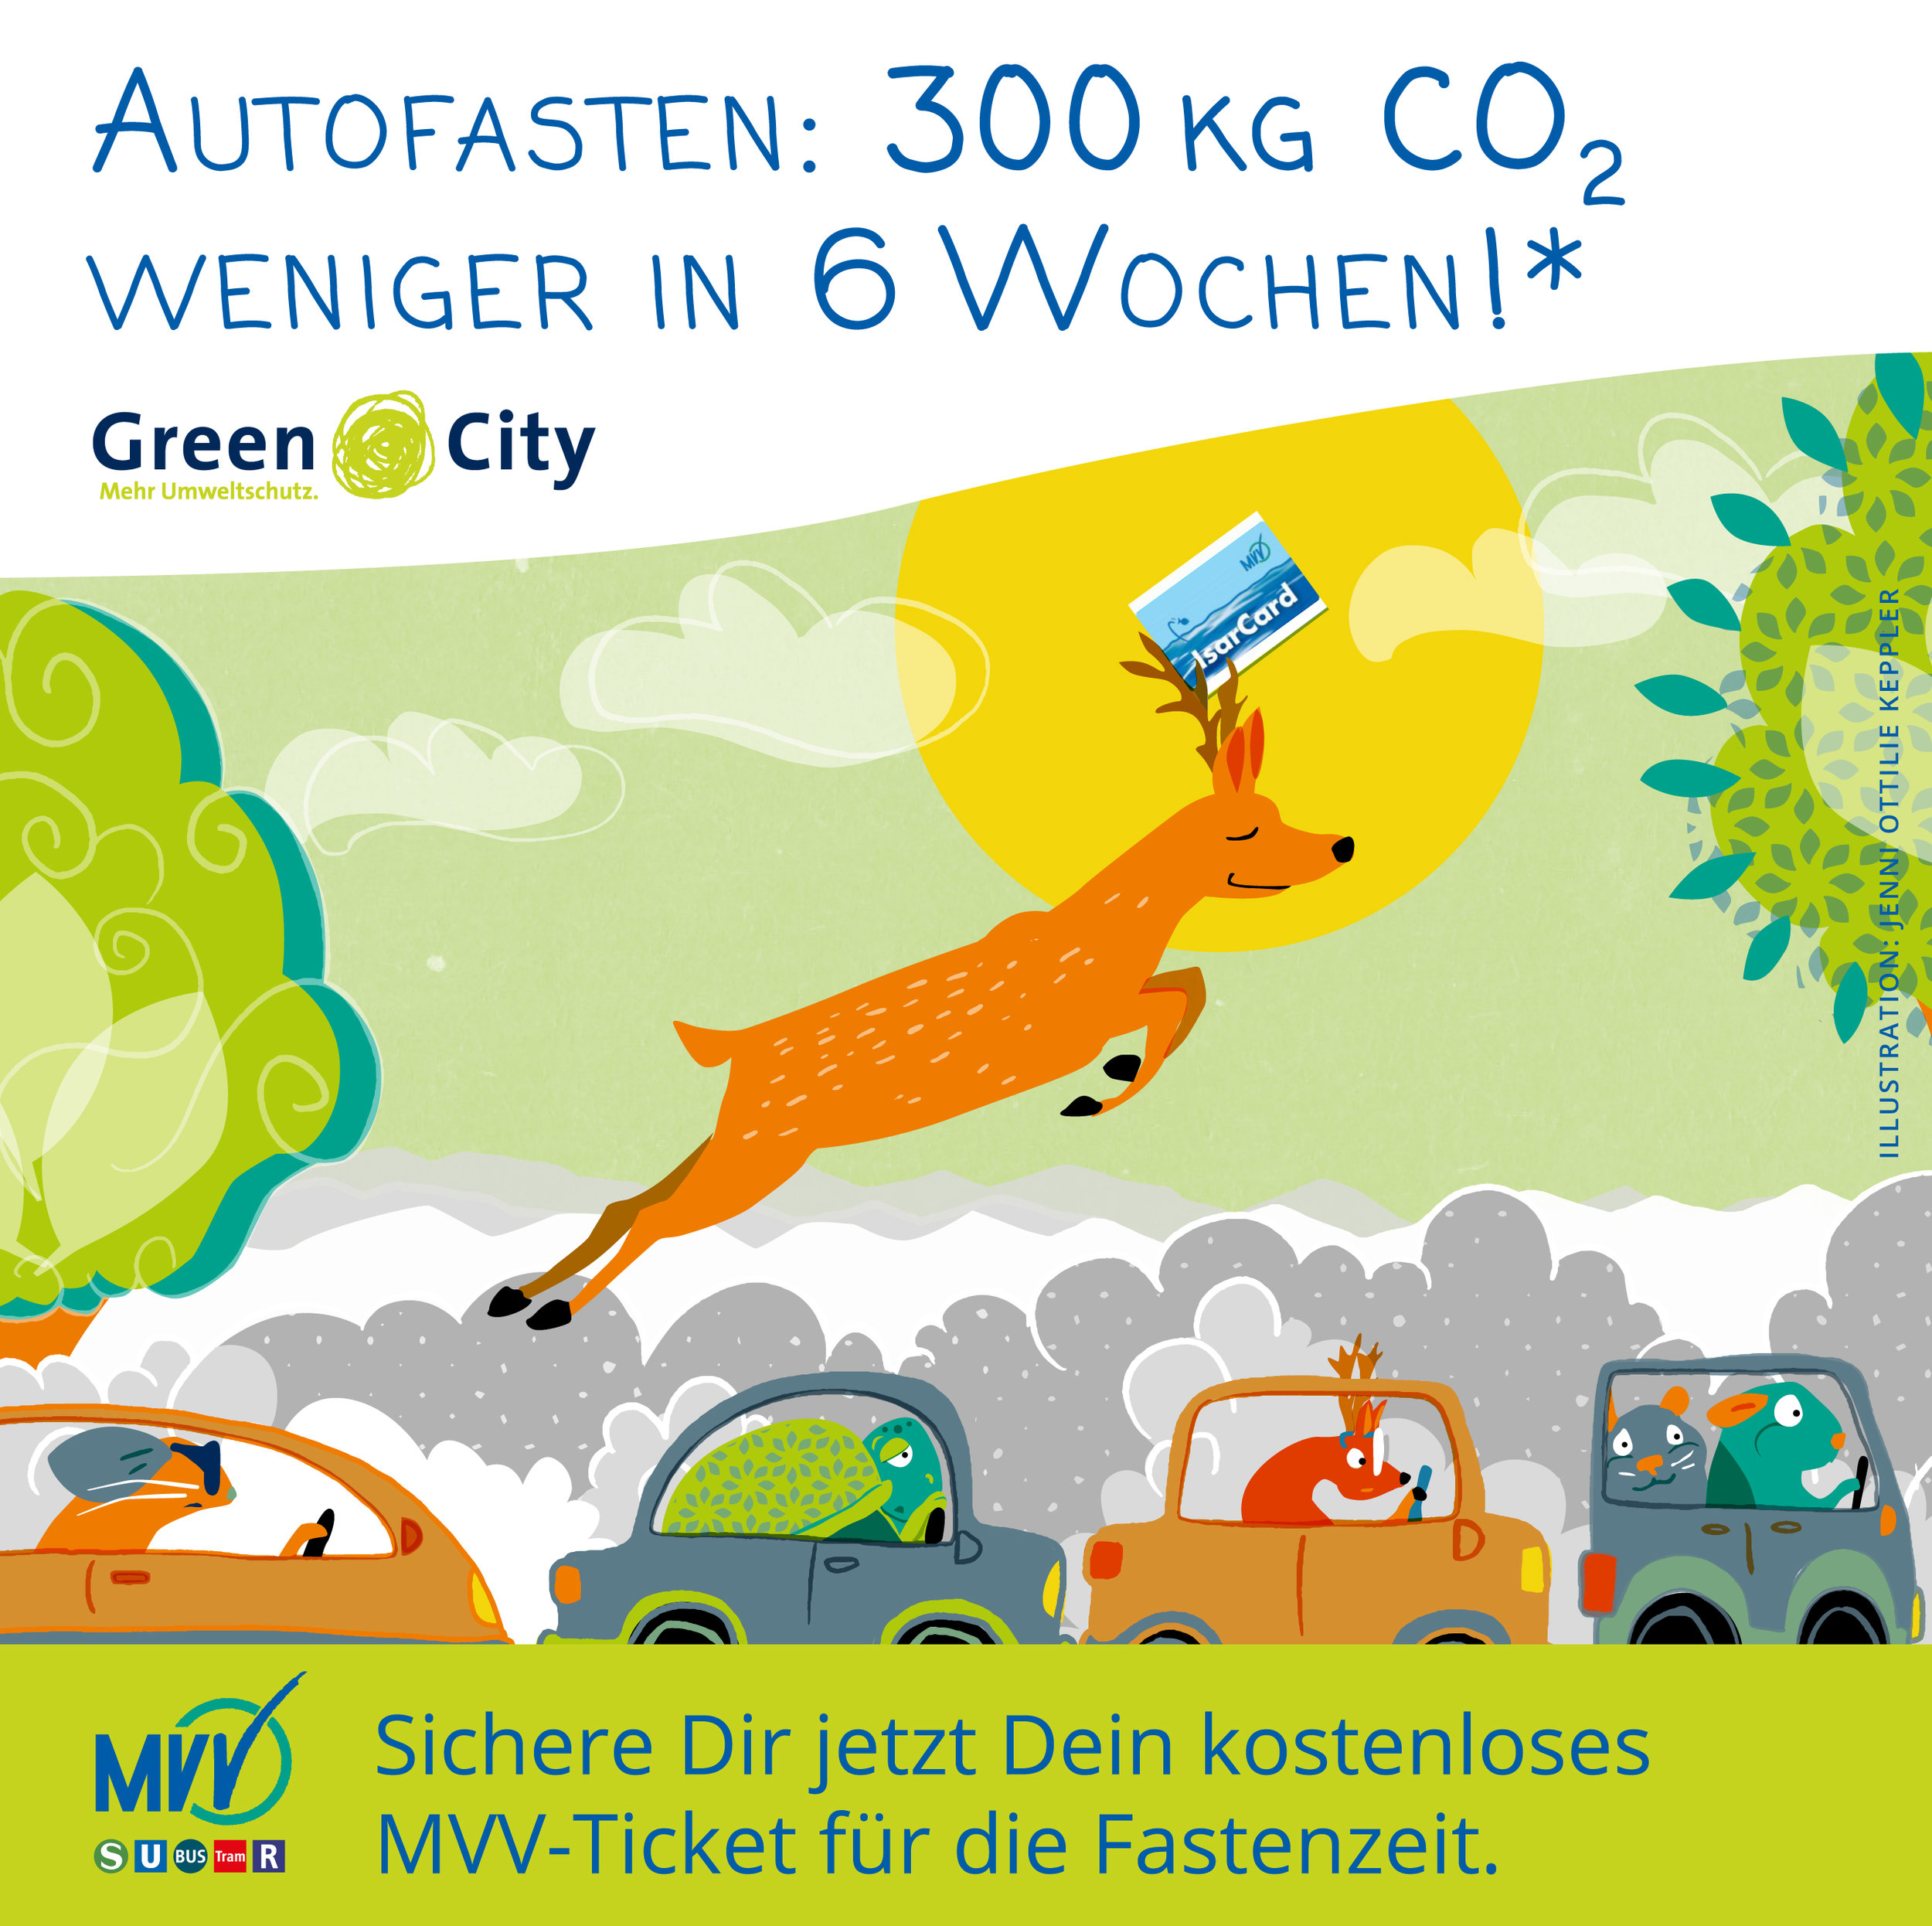 Copy of Autofasten Aktion MVV München